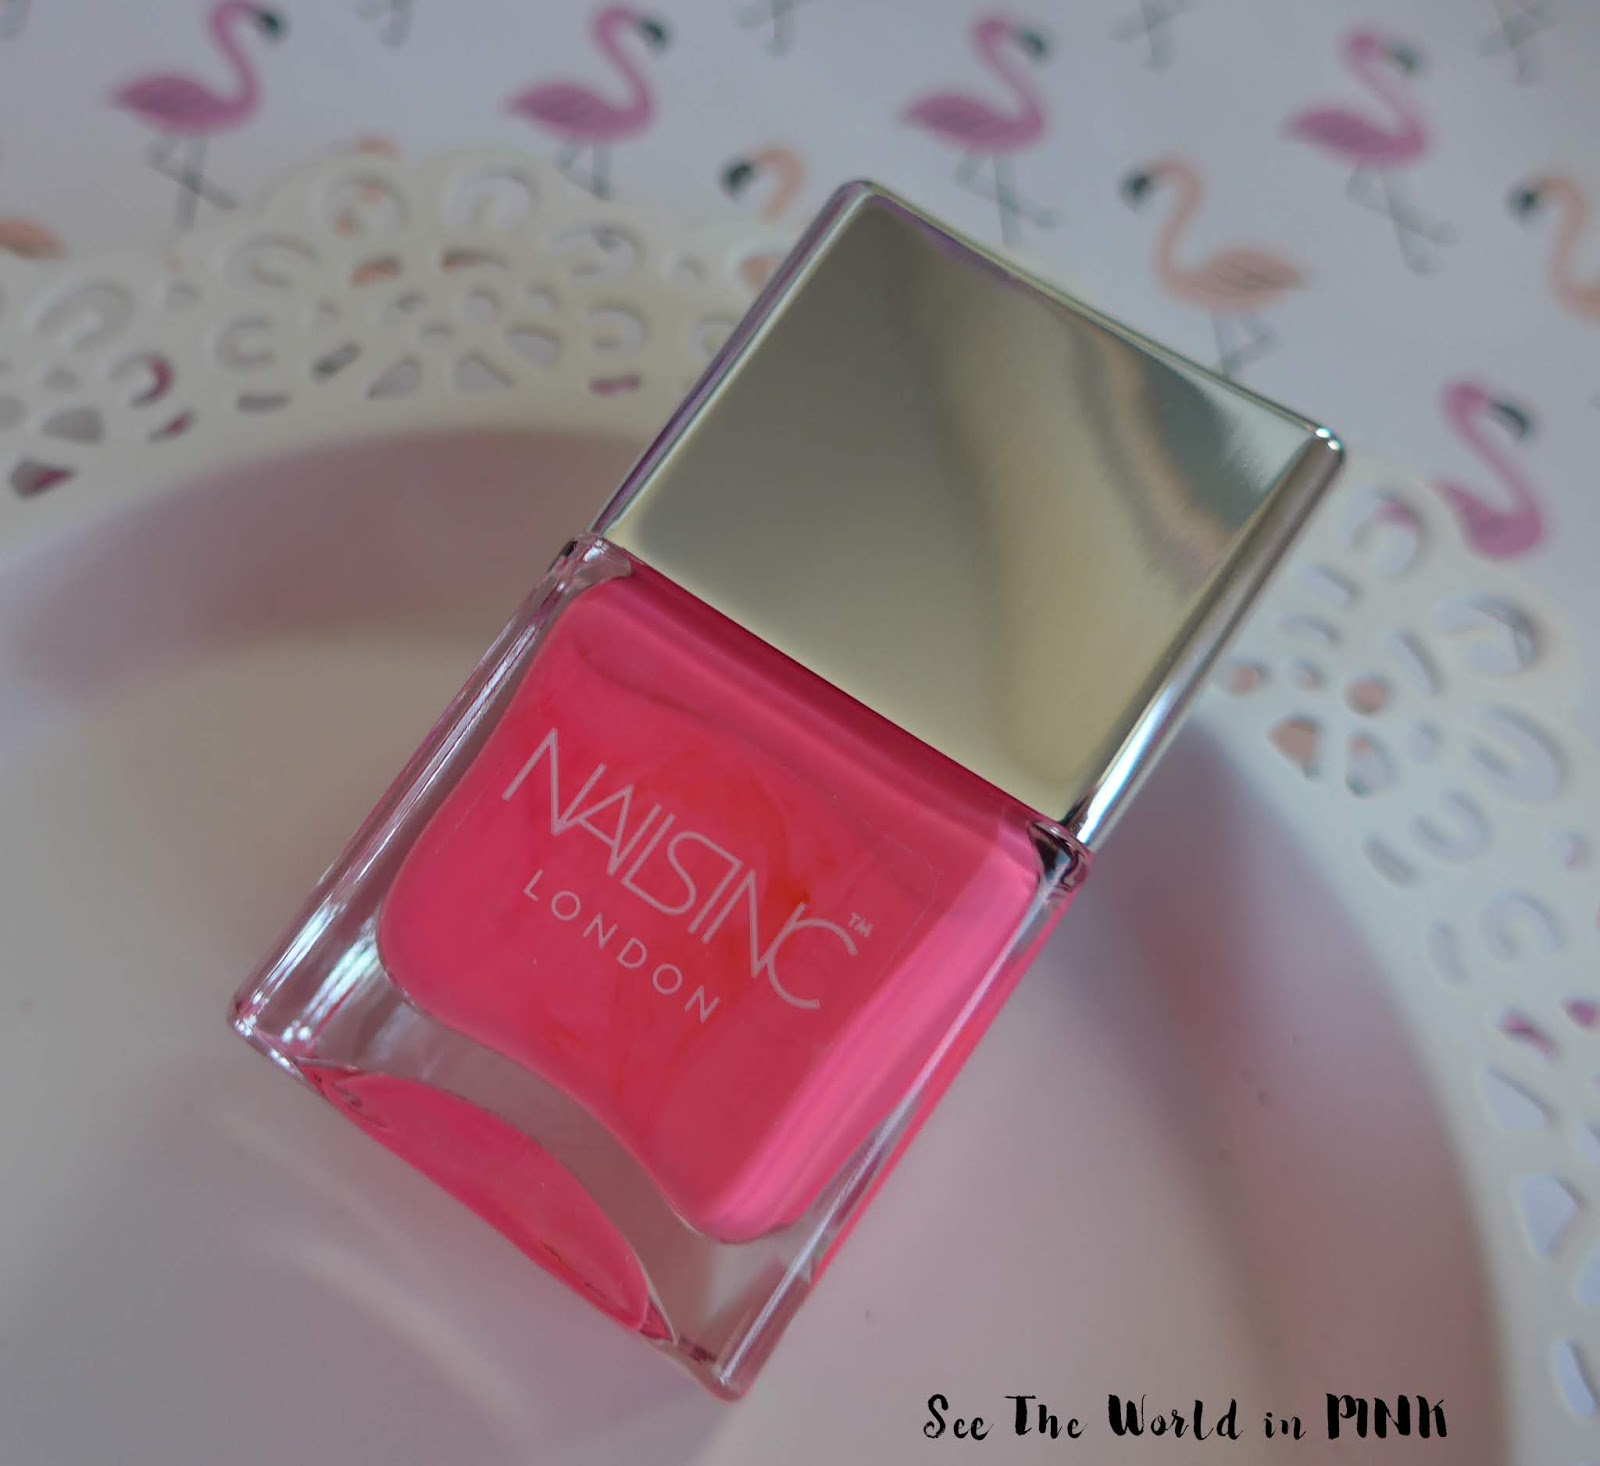 Manicure Monday - Nails Inc. Flock You Nail Polish Duo